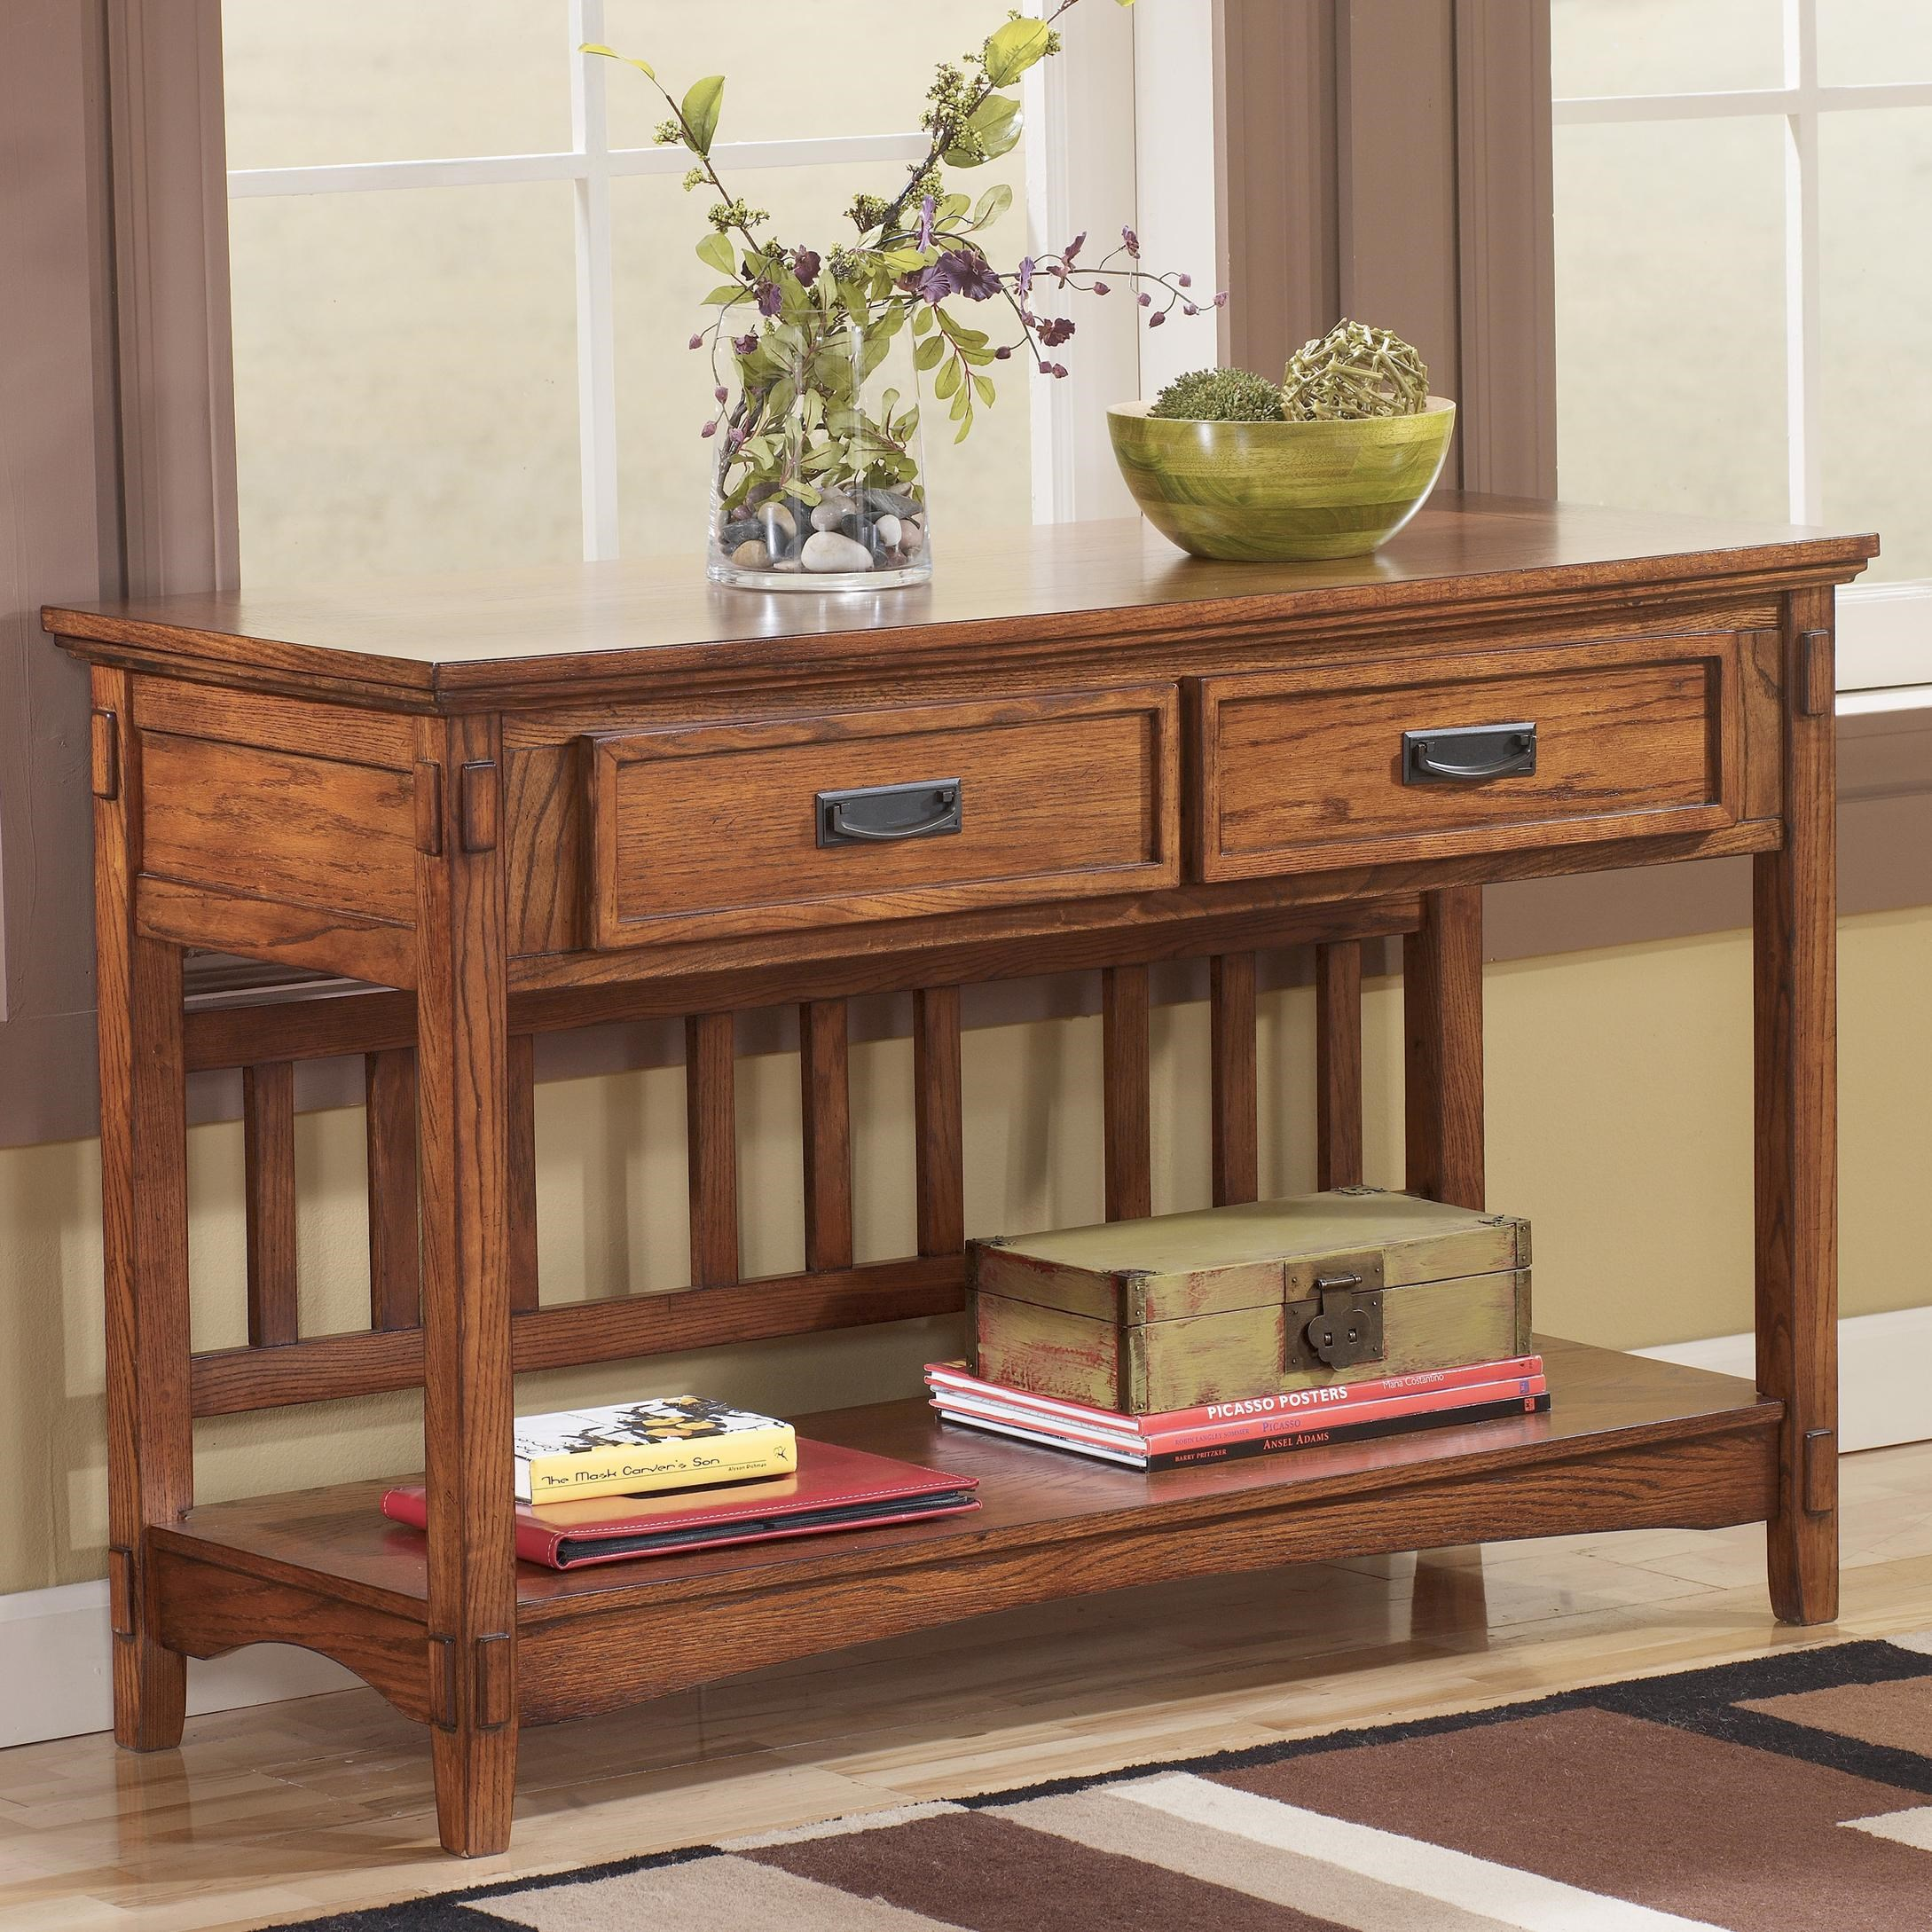 Signature Design By Ashley Cross Island Mission Sofa/Console Table   Becker  Furniture World   Sofa Table